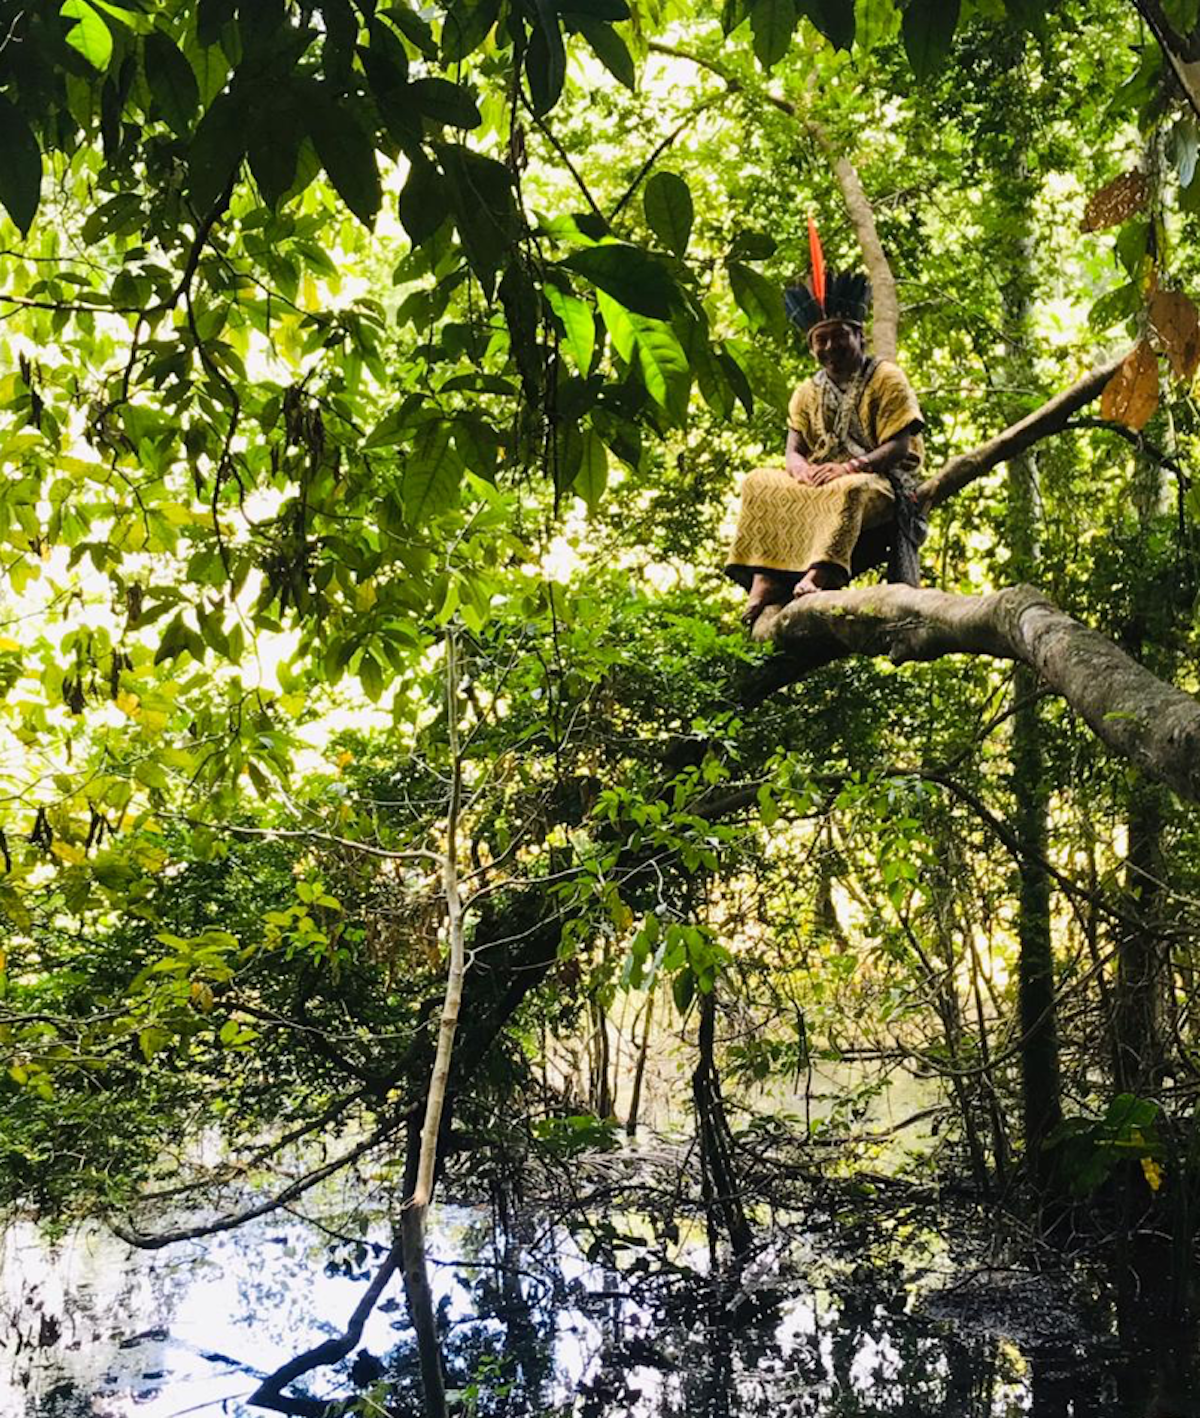 Ninawa sitting at the crux of two branches in a tree over water